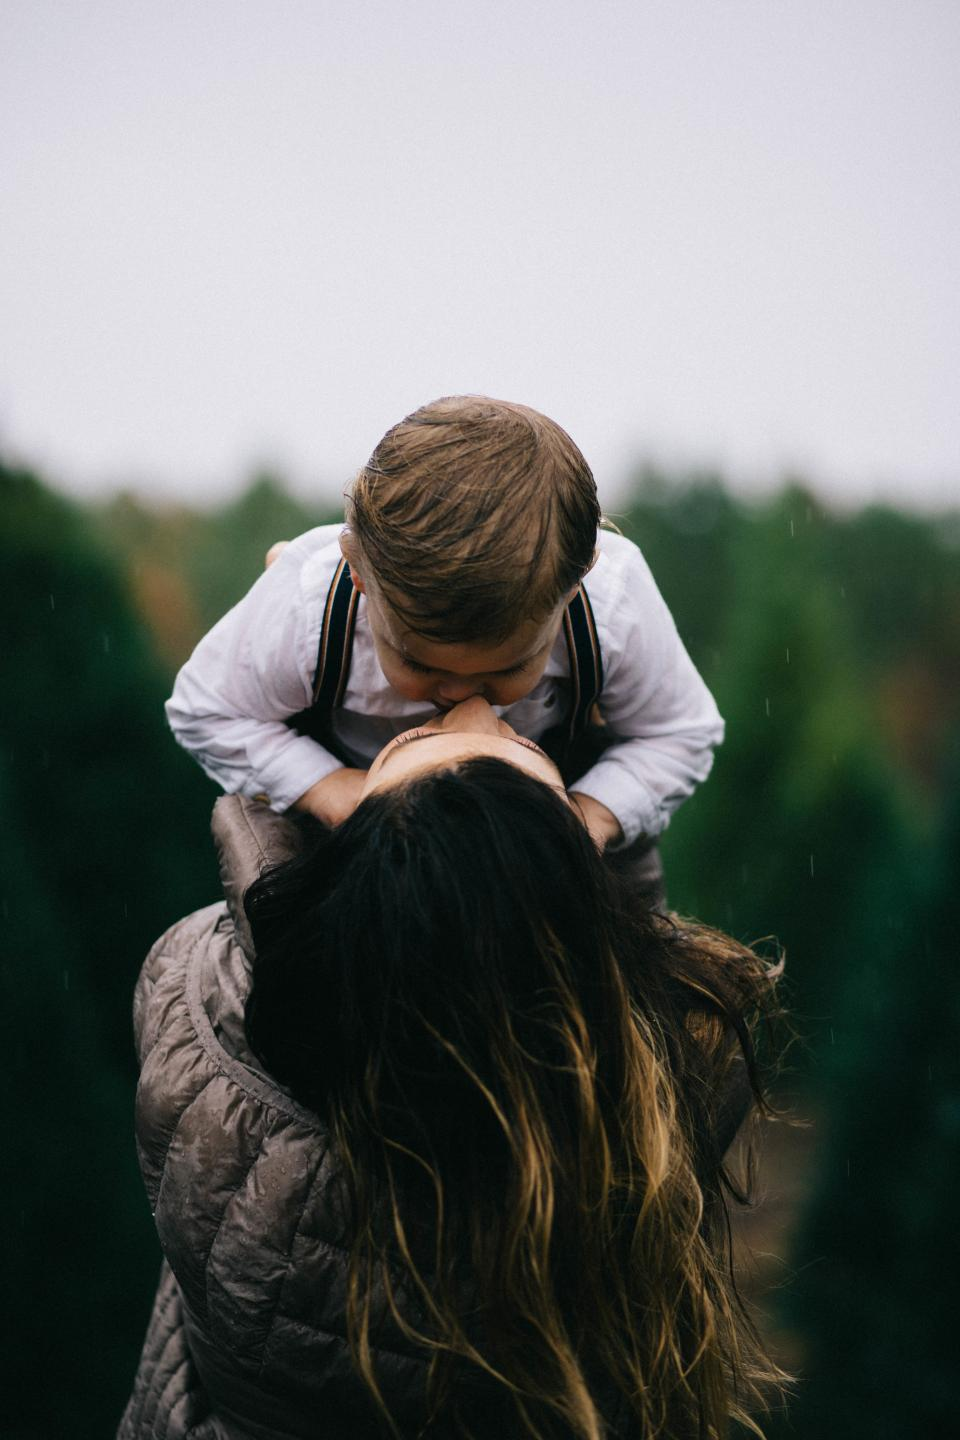 people mother son woman kid child baby boy kiss love blur nature outdoor